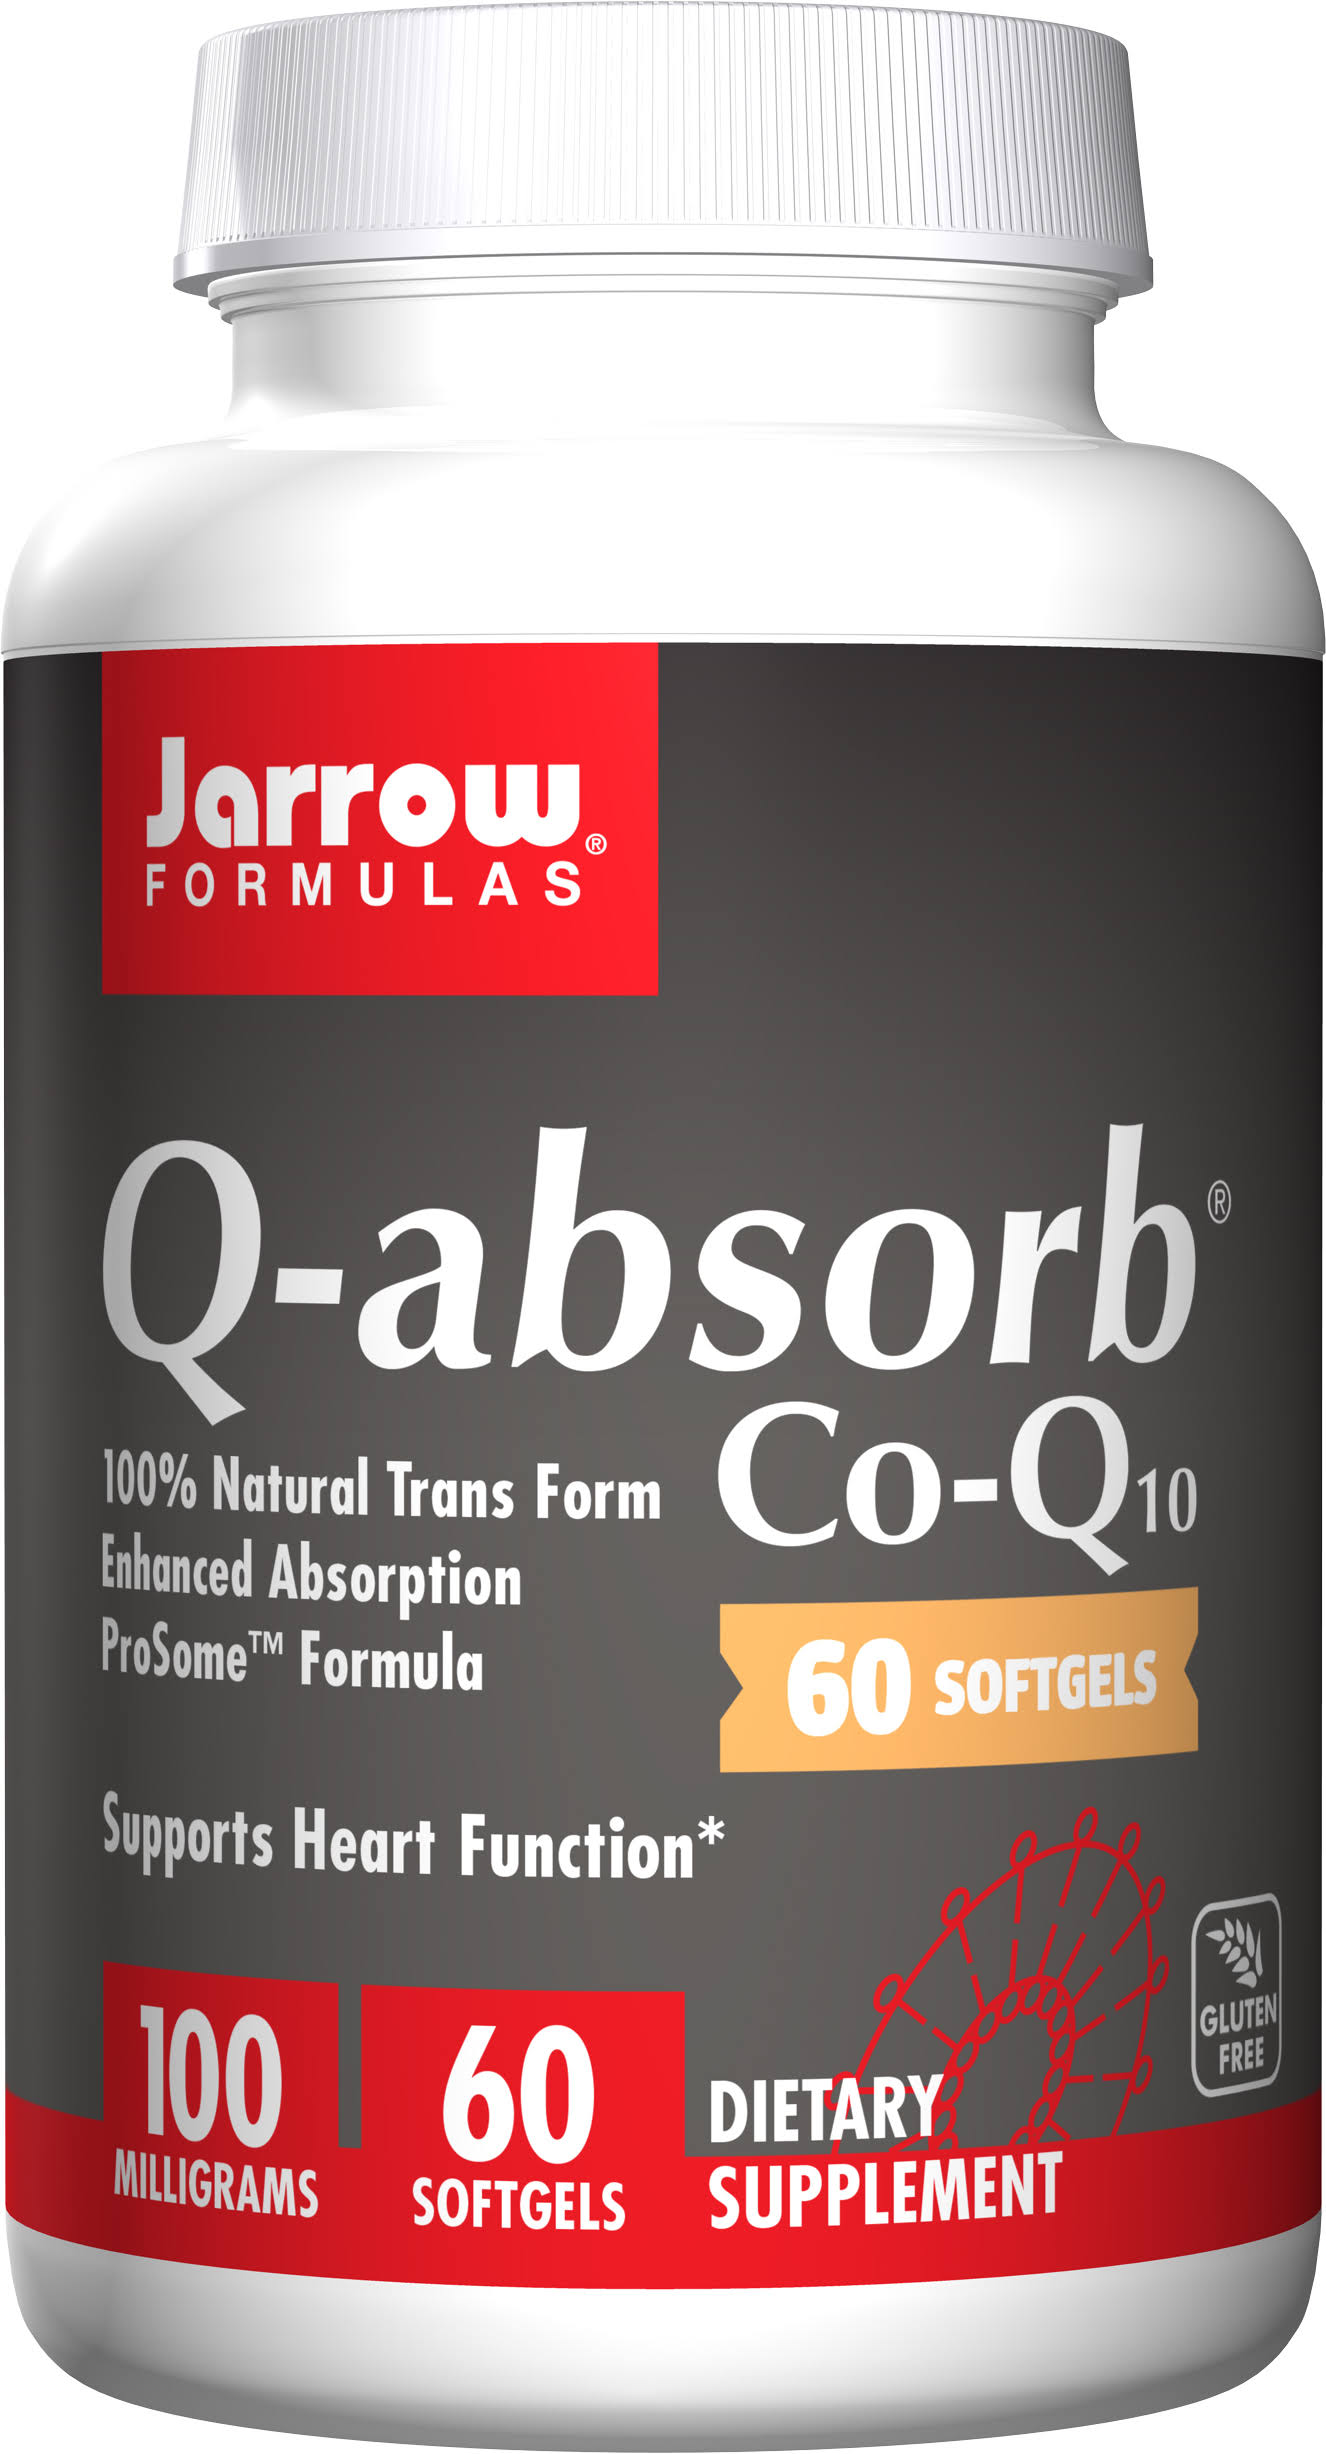 Jarrow Formulas Q-Absorb Co-Q10 - 100mg, 60ct